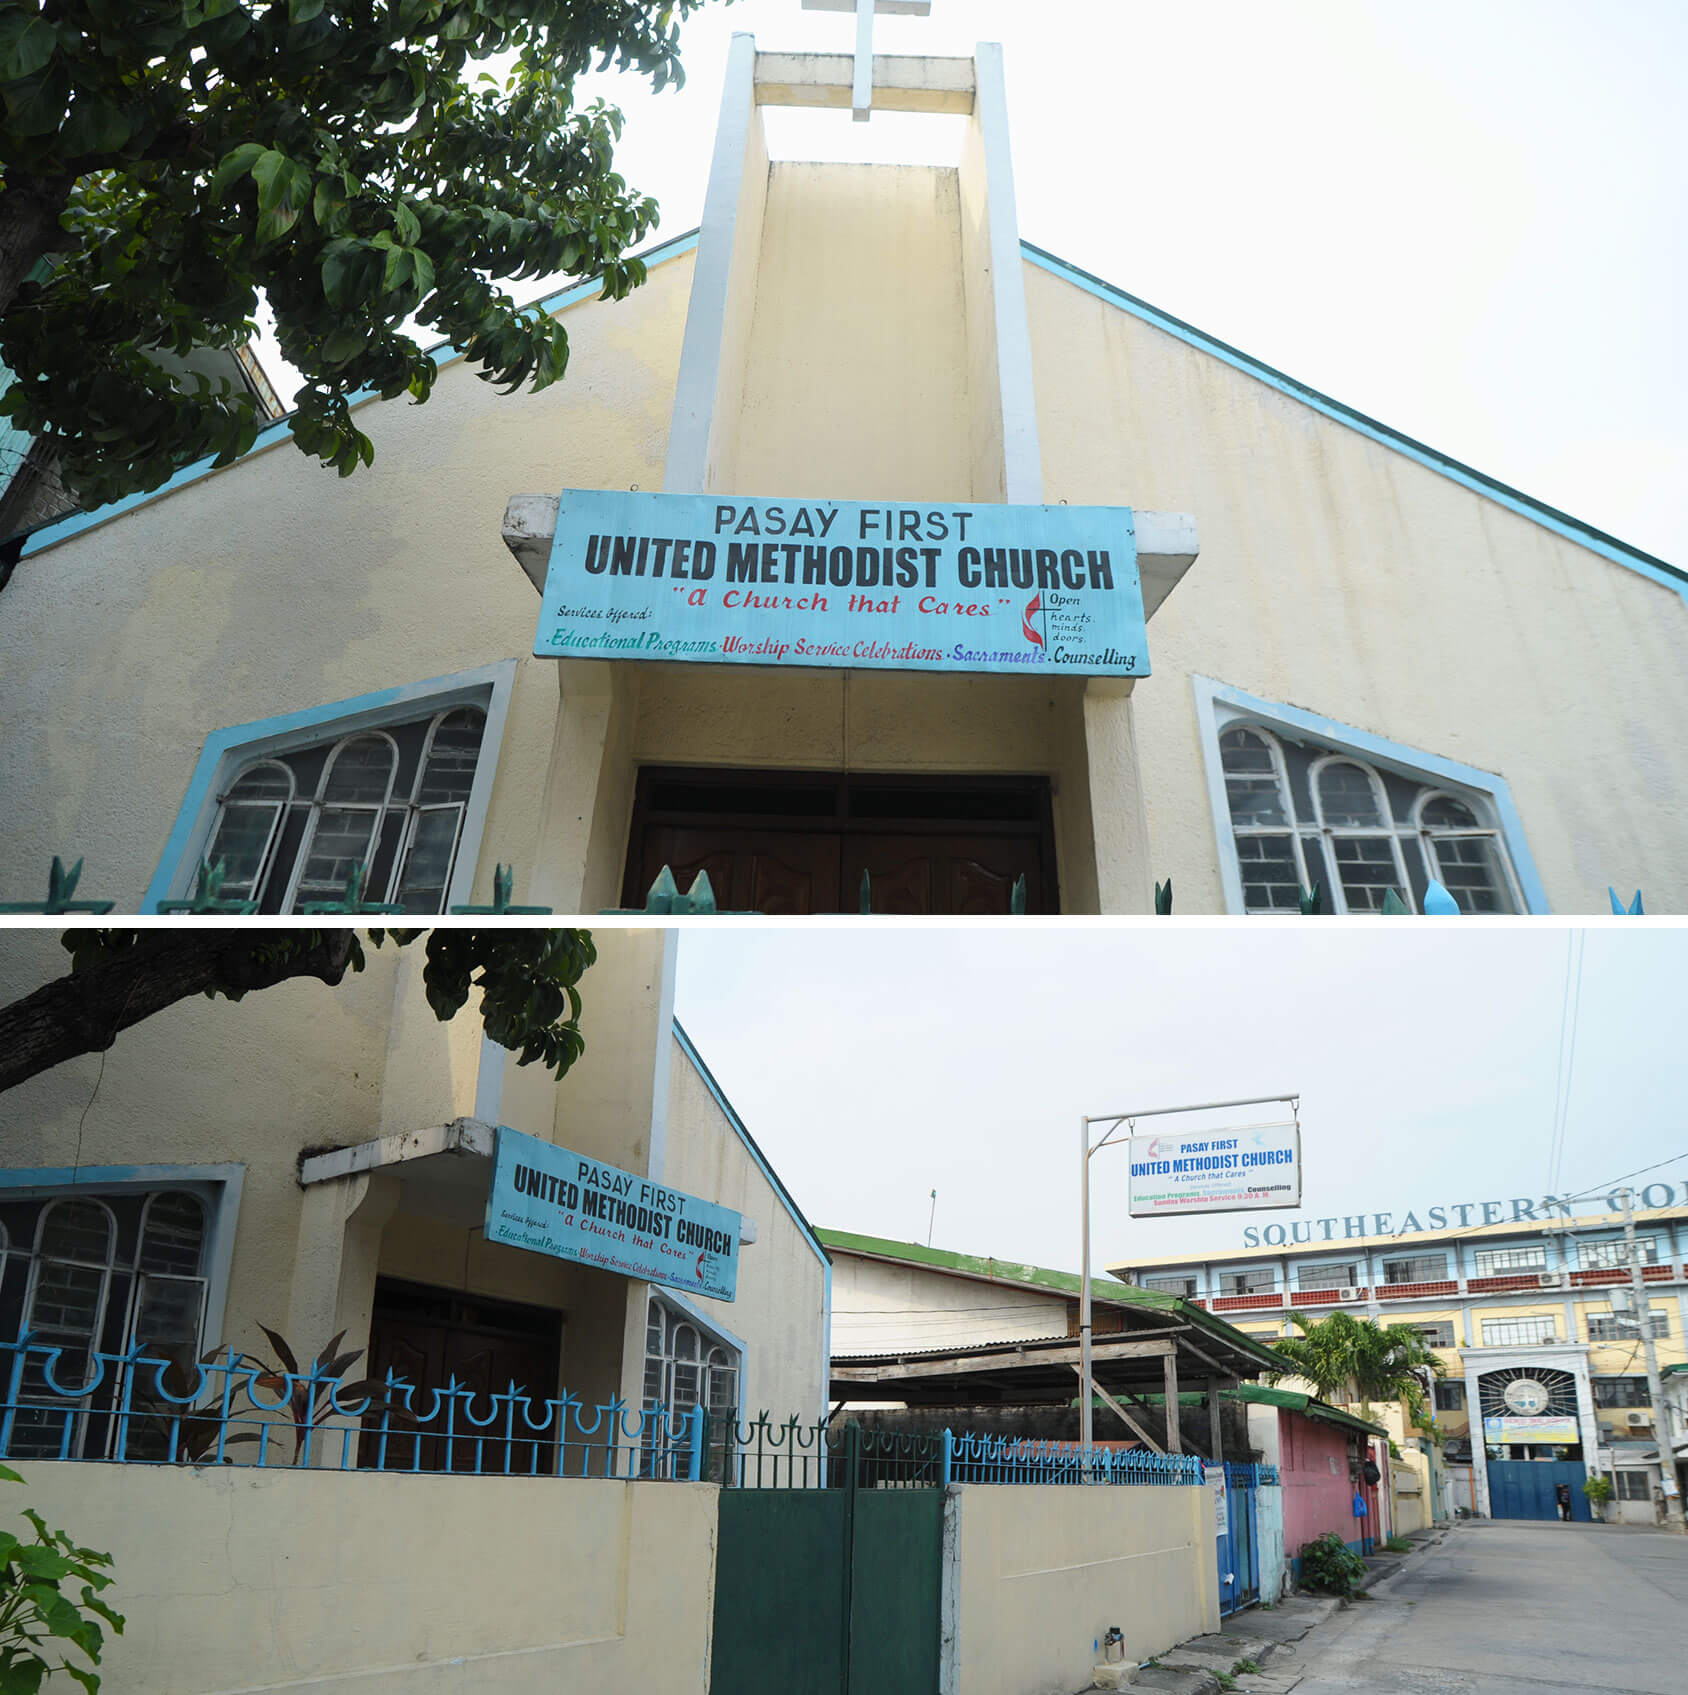 Pasay First United Methodist Church